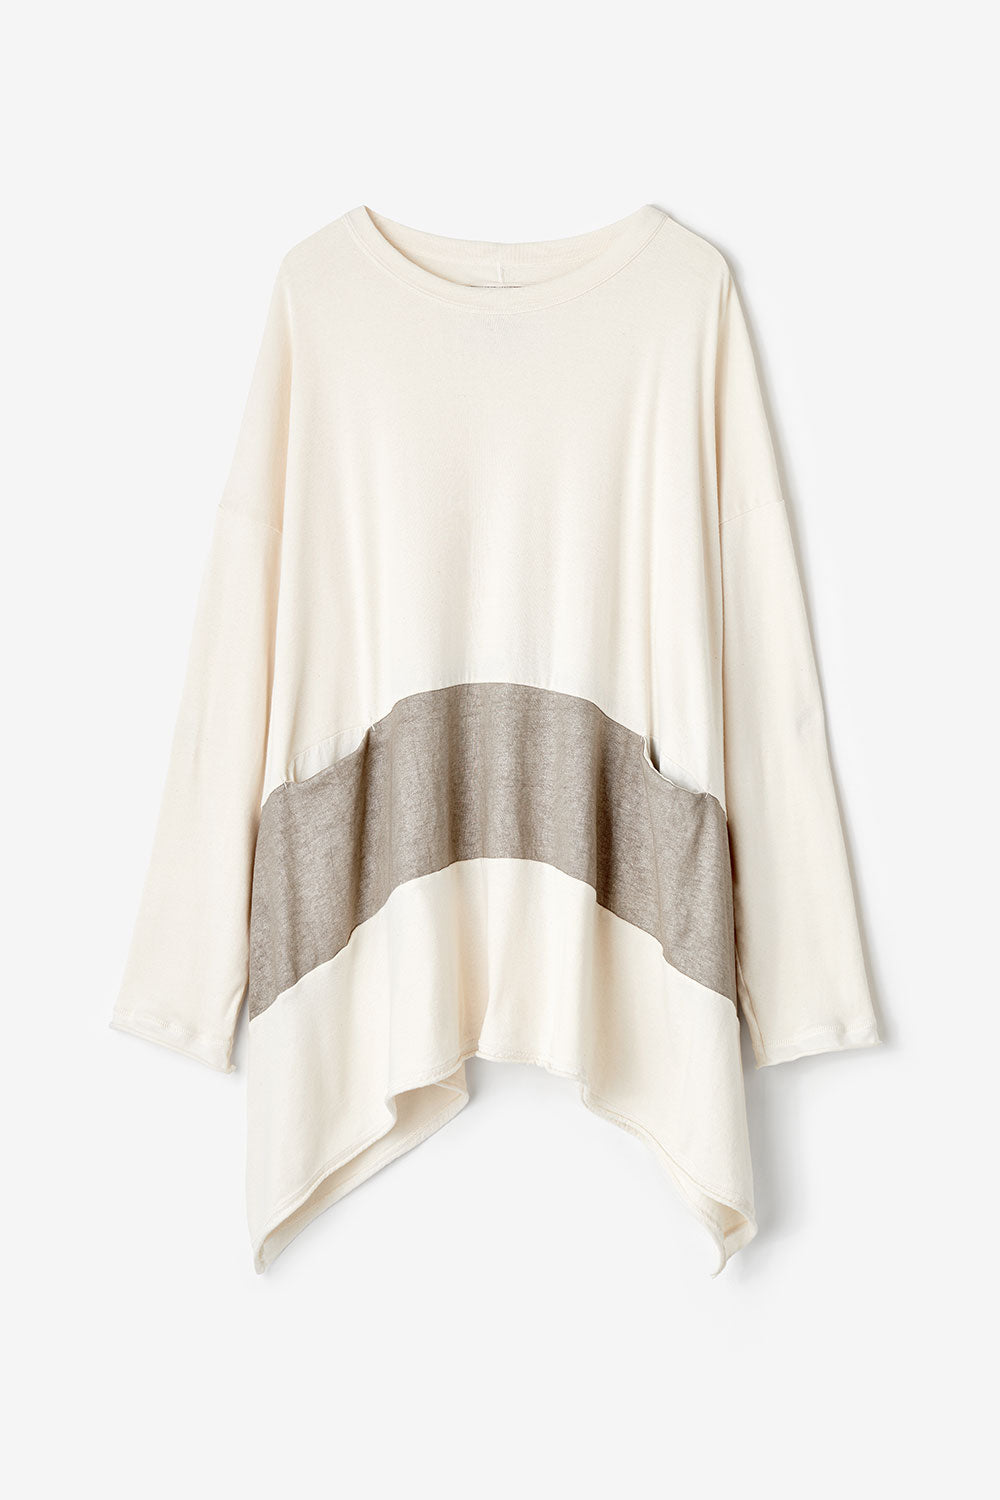 Alabama Chanin Core Club Organic Cotton Oversized Pullover with Pockets in Natural with Hand-Painted Tan Stripe